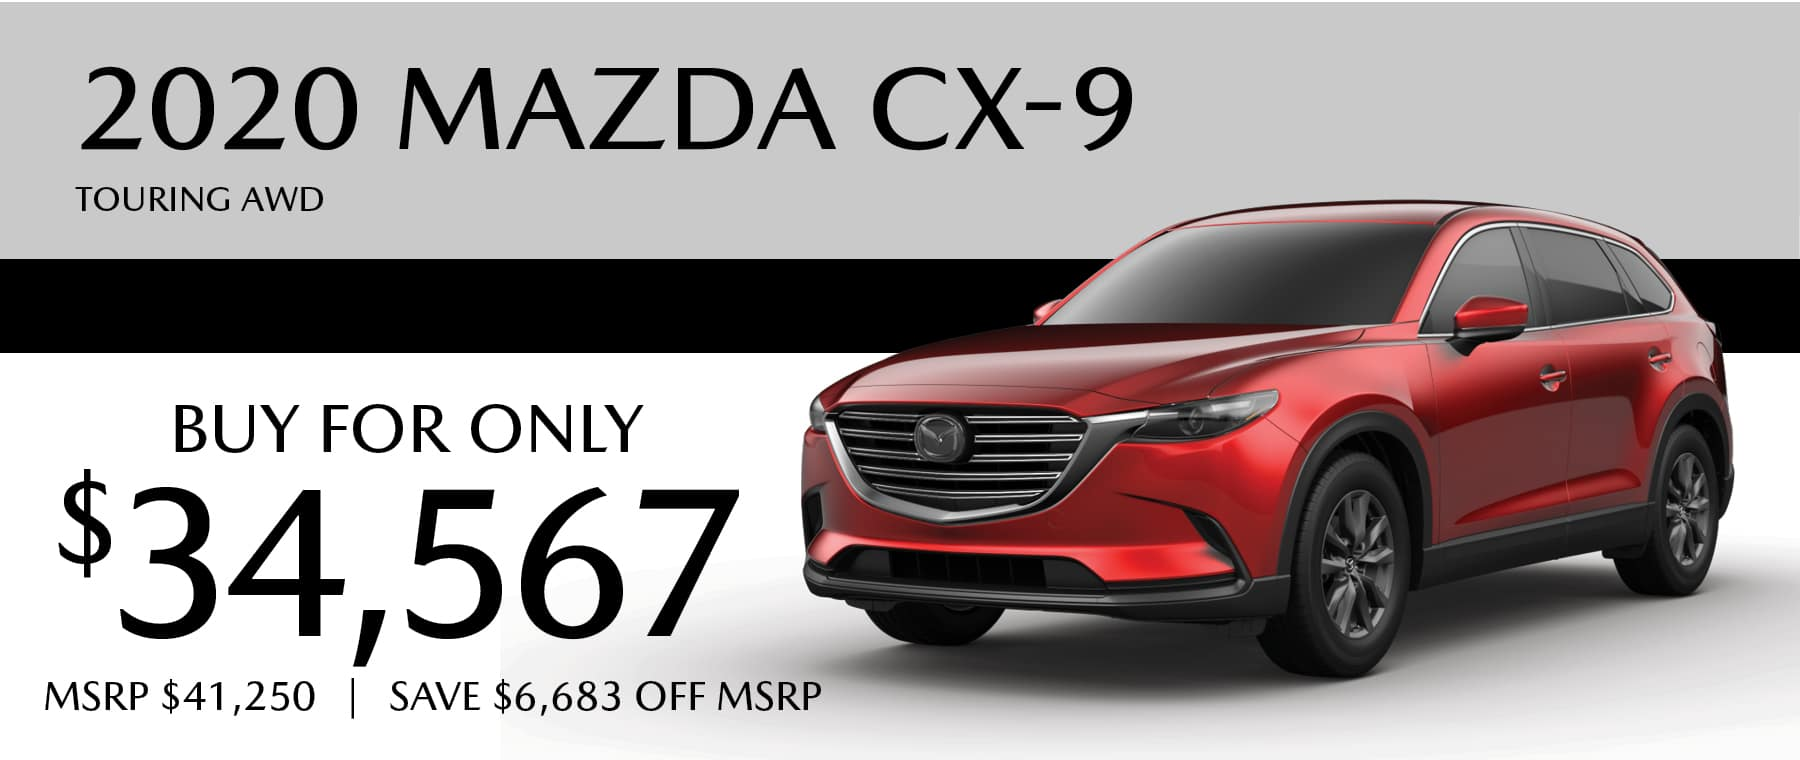 2020 Mazda CX-9 Touring AWD buy for $34,567 and save $6,683 off MSRP